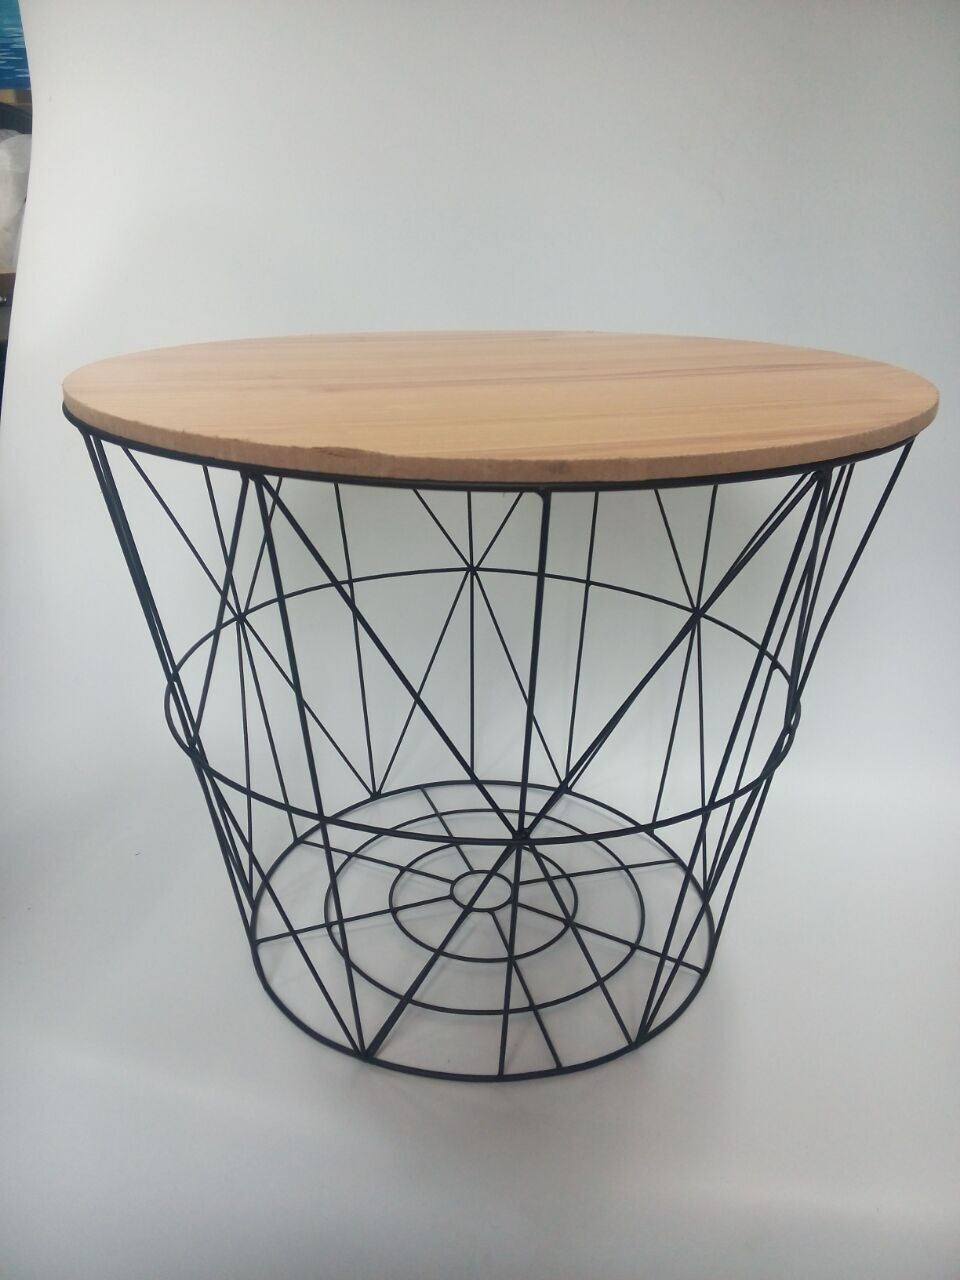 Jn coating metal wire basket with lid coffee table buy baskets with wood lids decorative wire Coffee table baskets